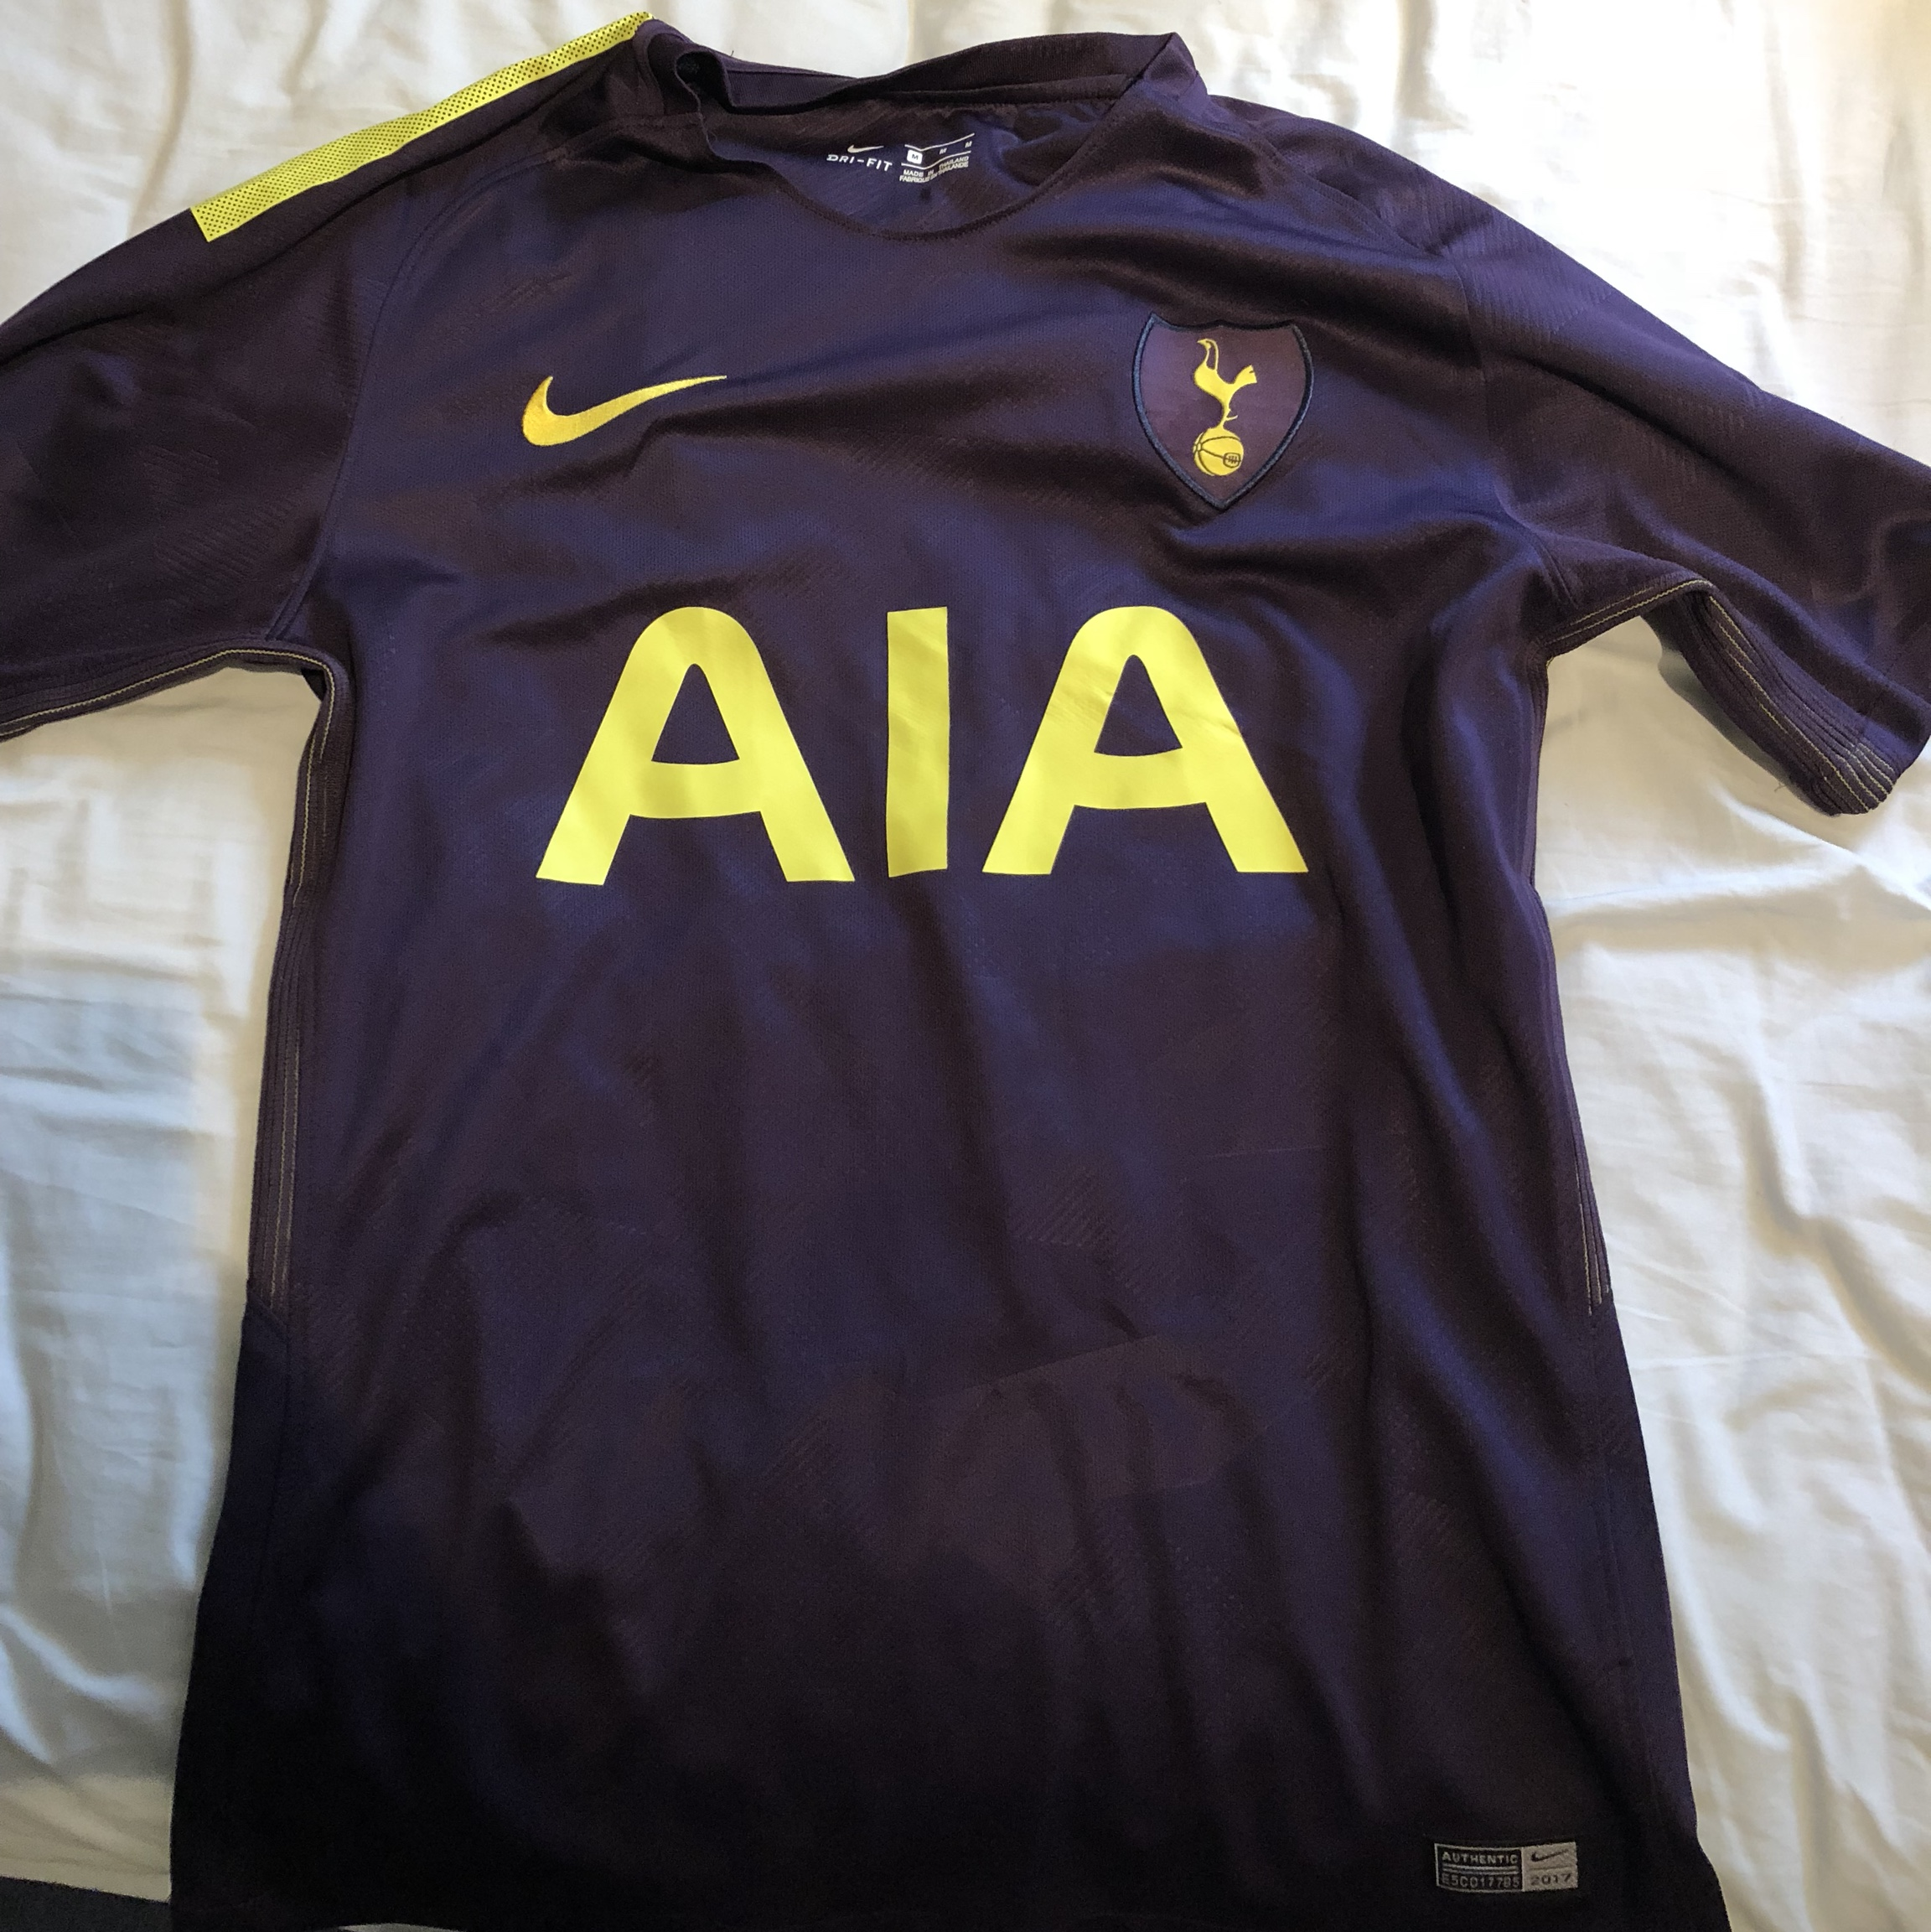 reputable site ddec1 fe92d Tottenham 3rd Kit 2017-2018 top. Like new condition... - Depop